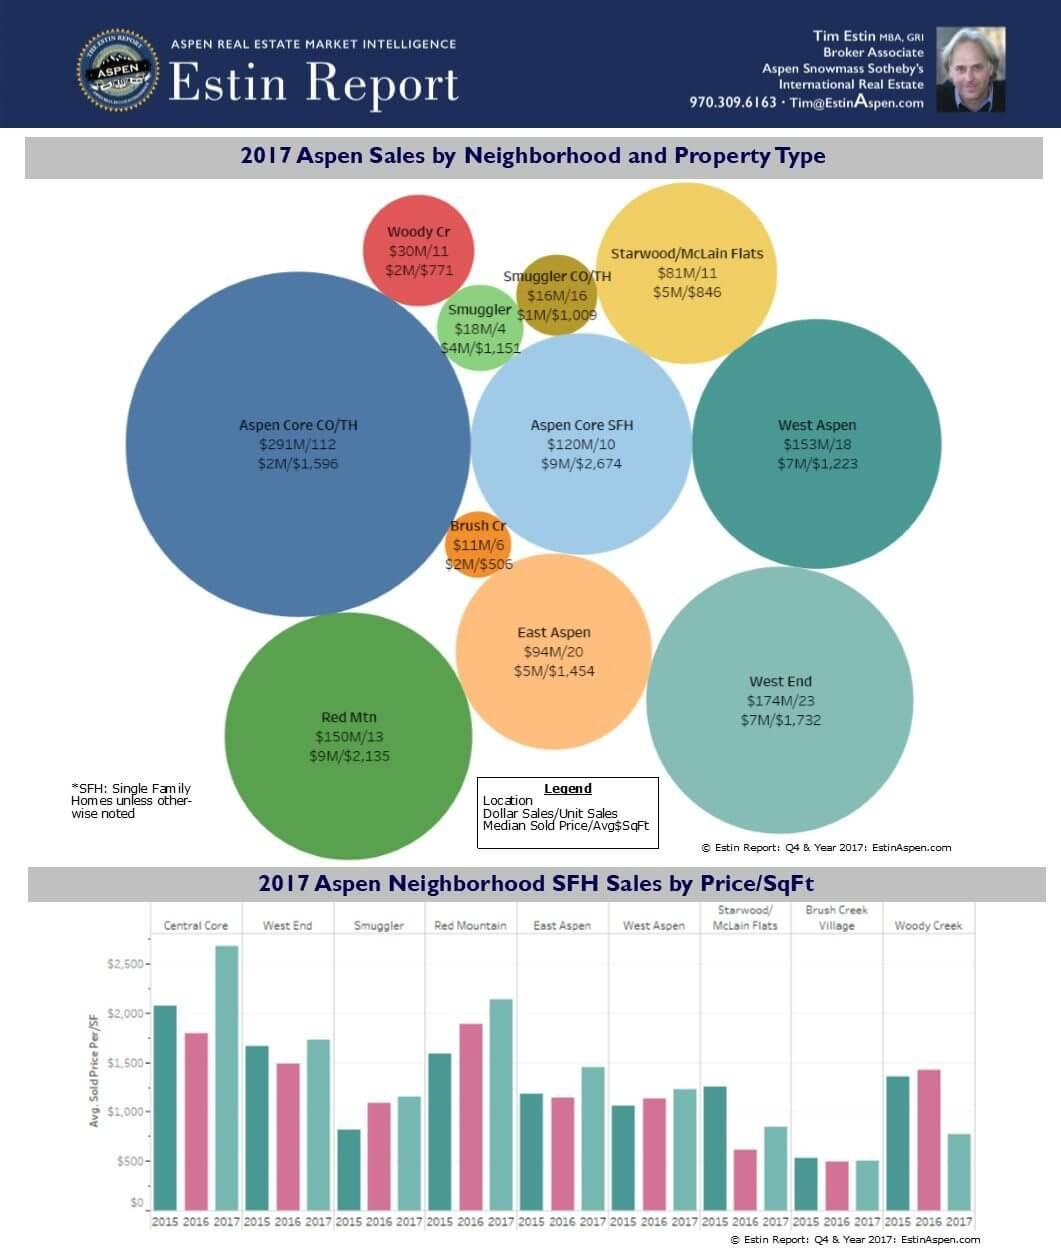 New Charts: 2017 Aspen Sales by Neighborhood and Downtown Condo Sales Fly High Image